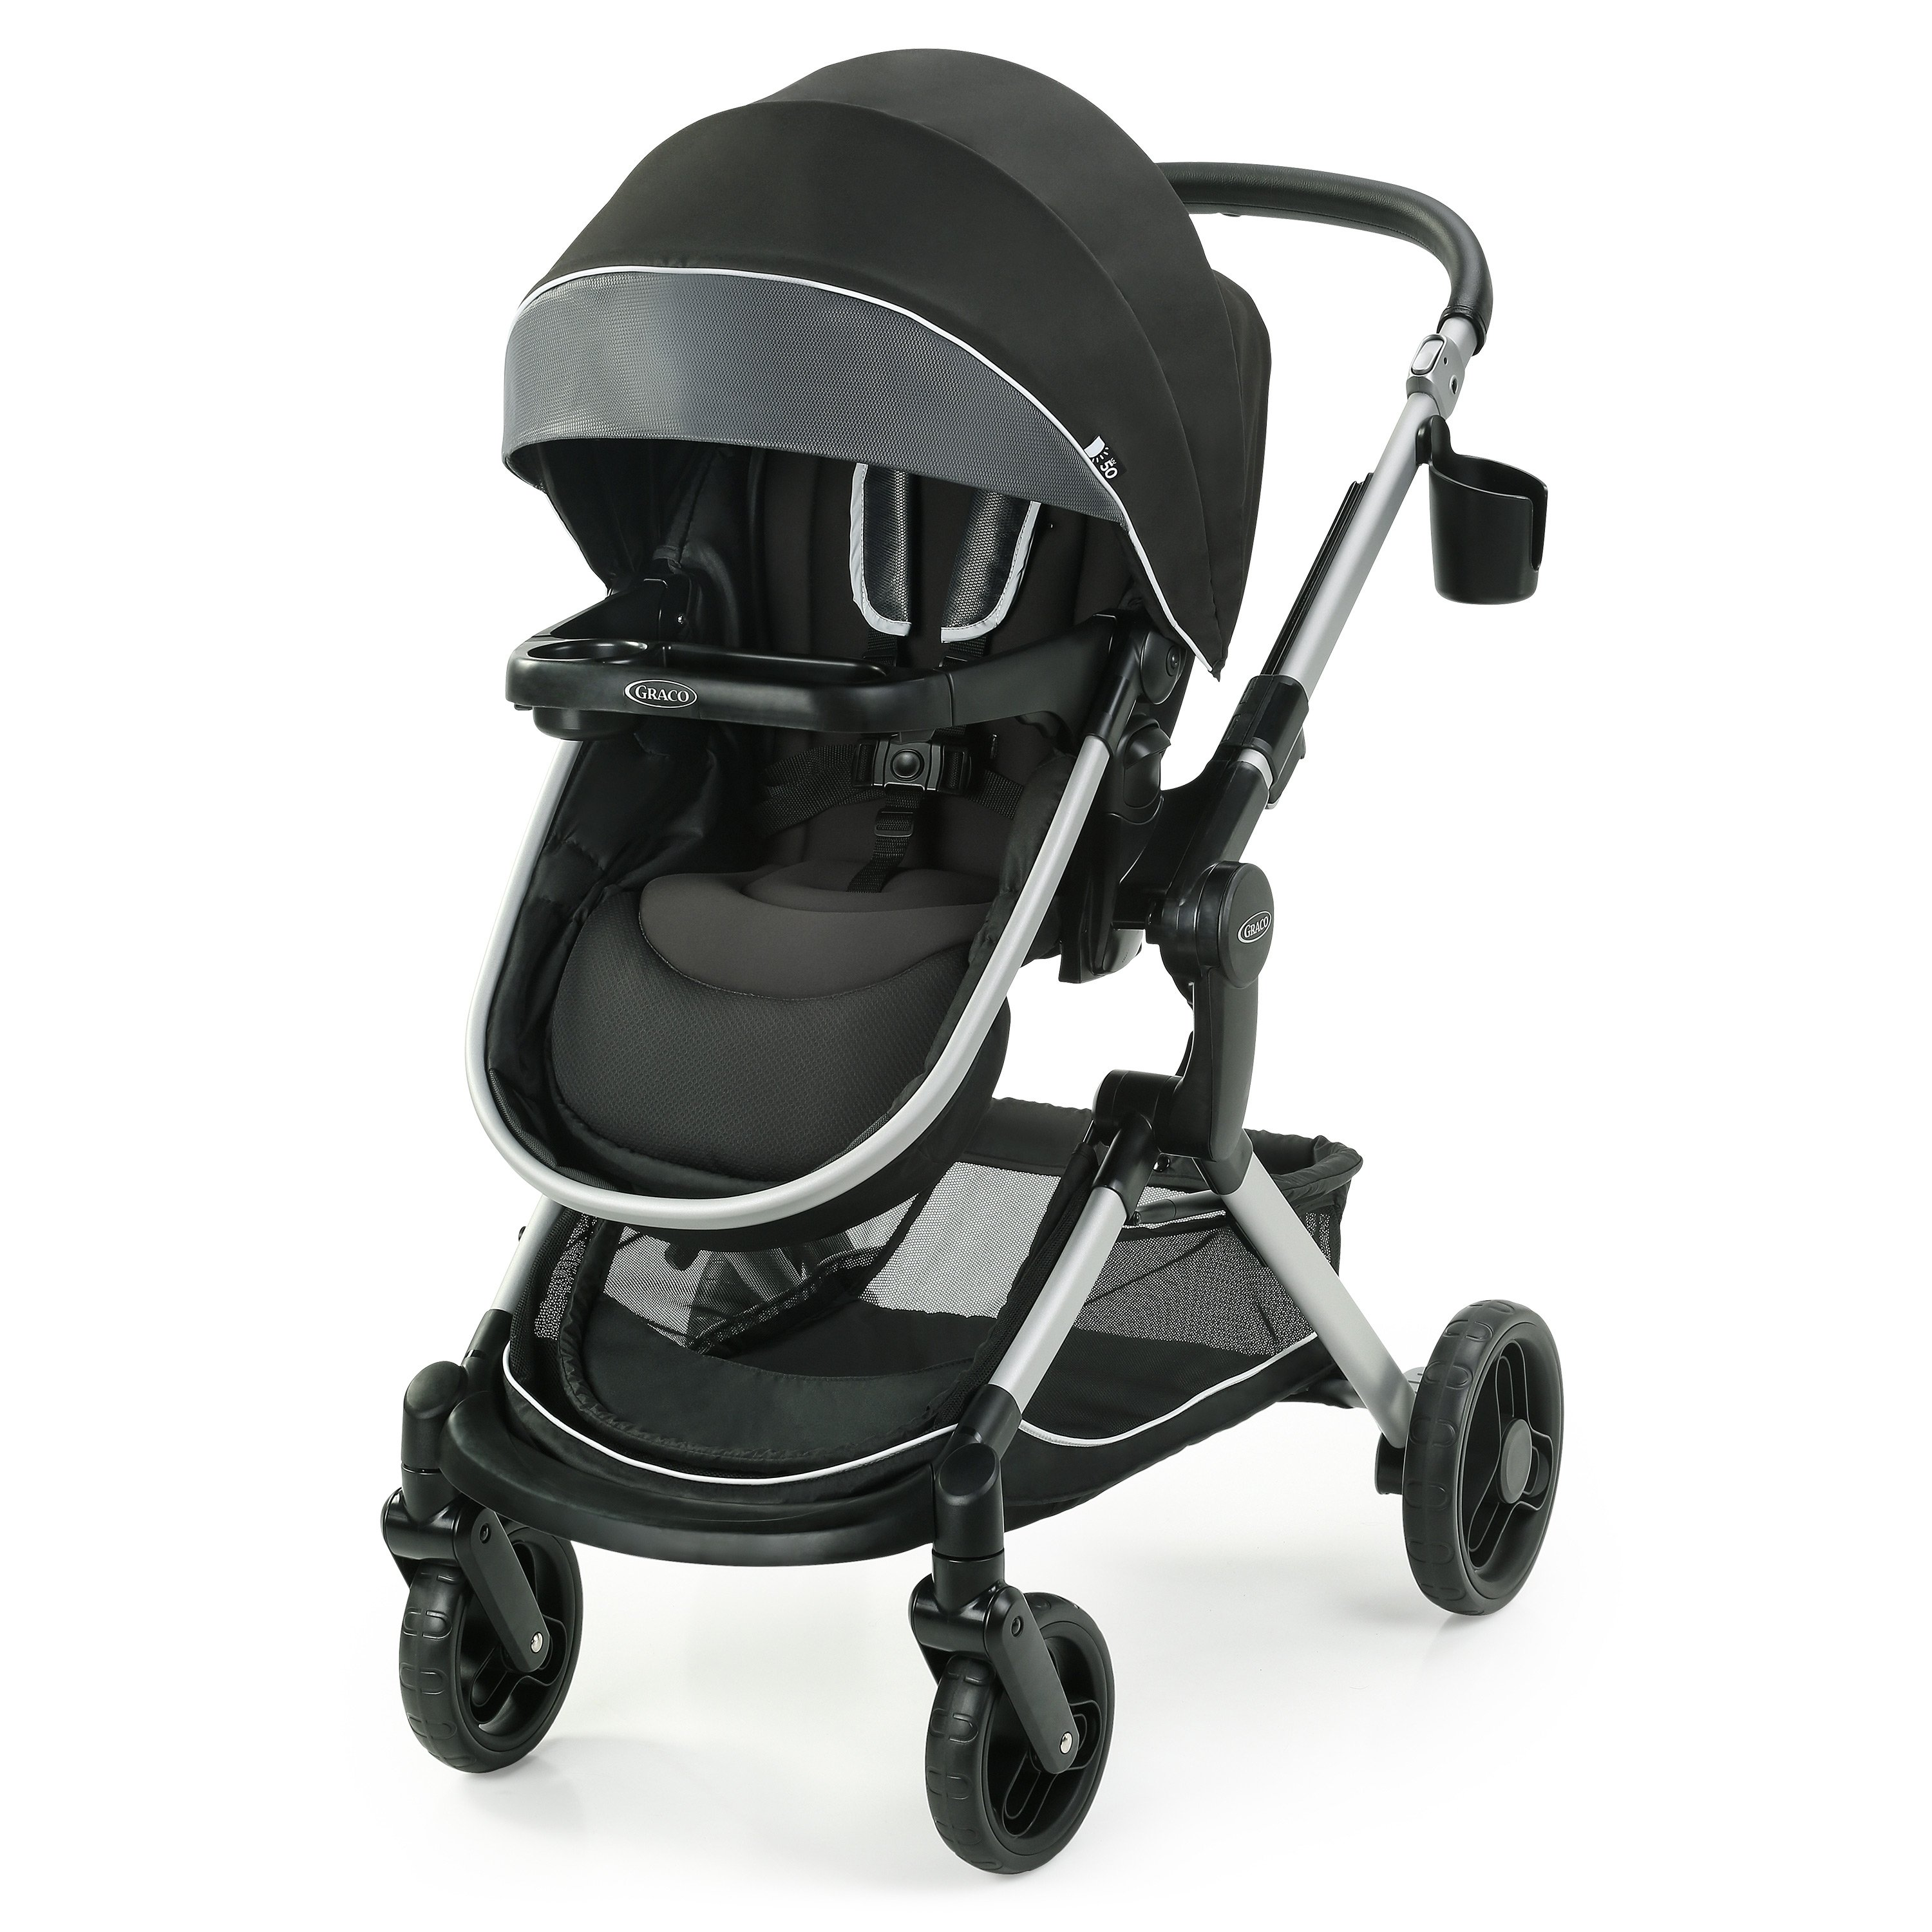 Graco Stroller Replacement Parts - Stroller